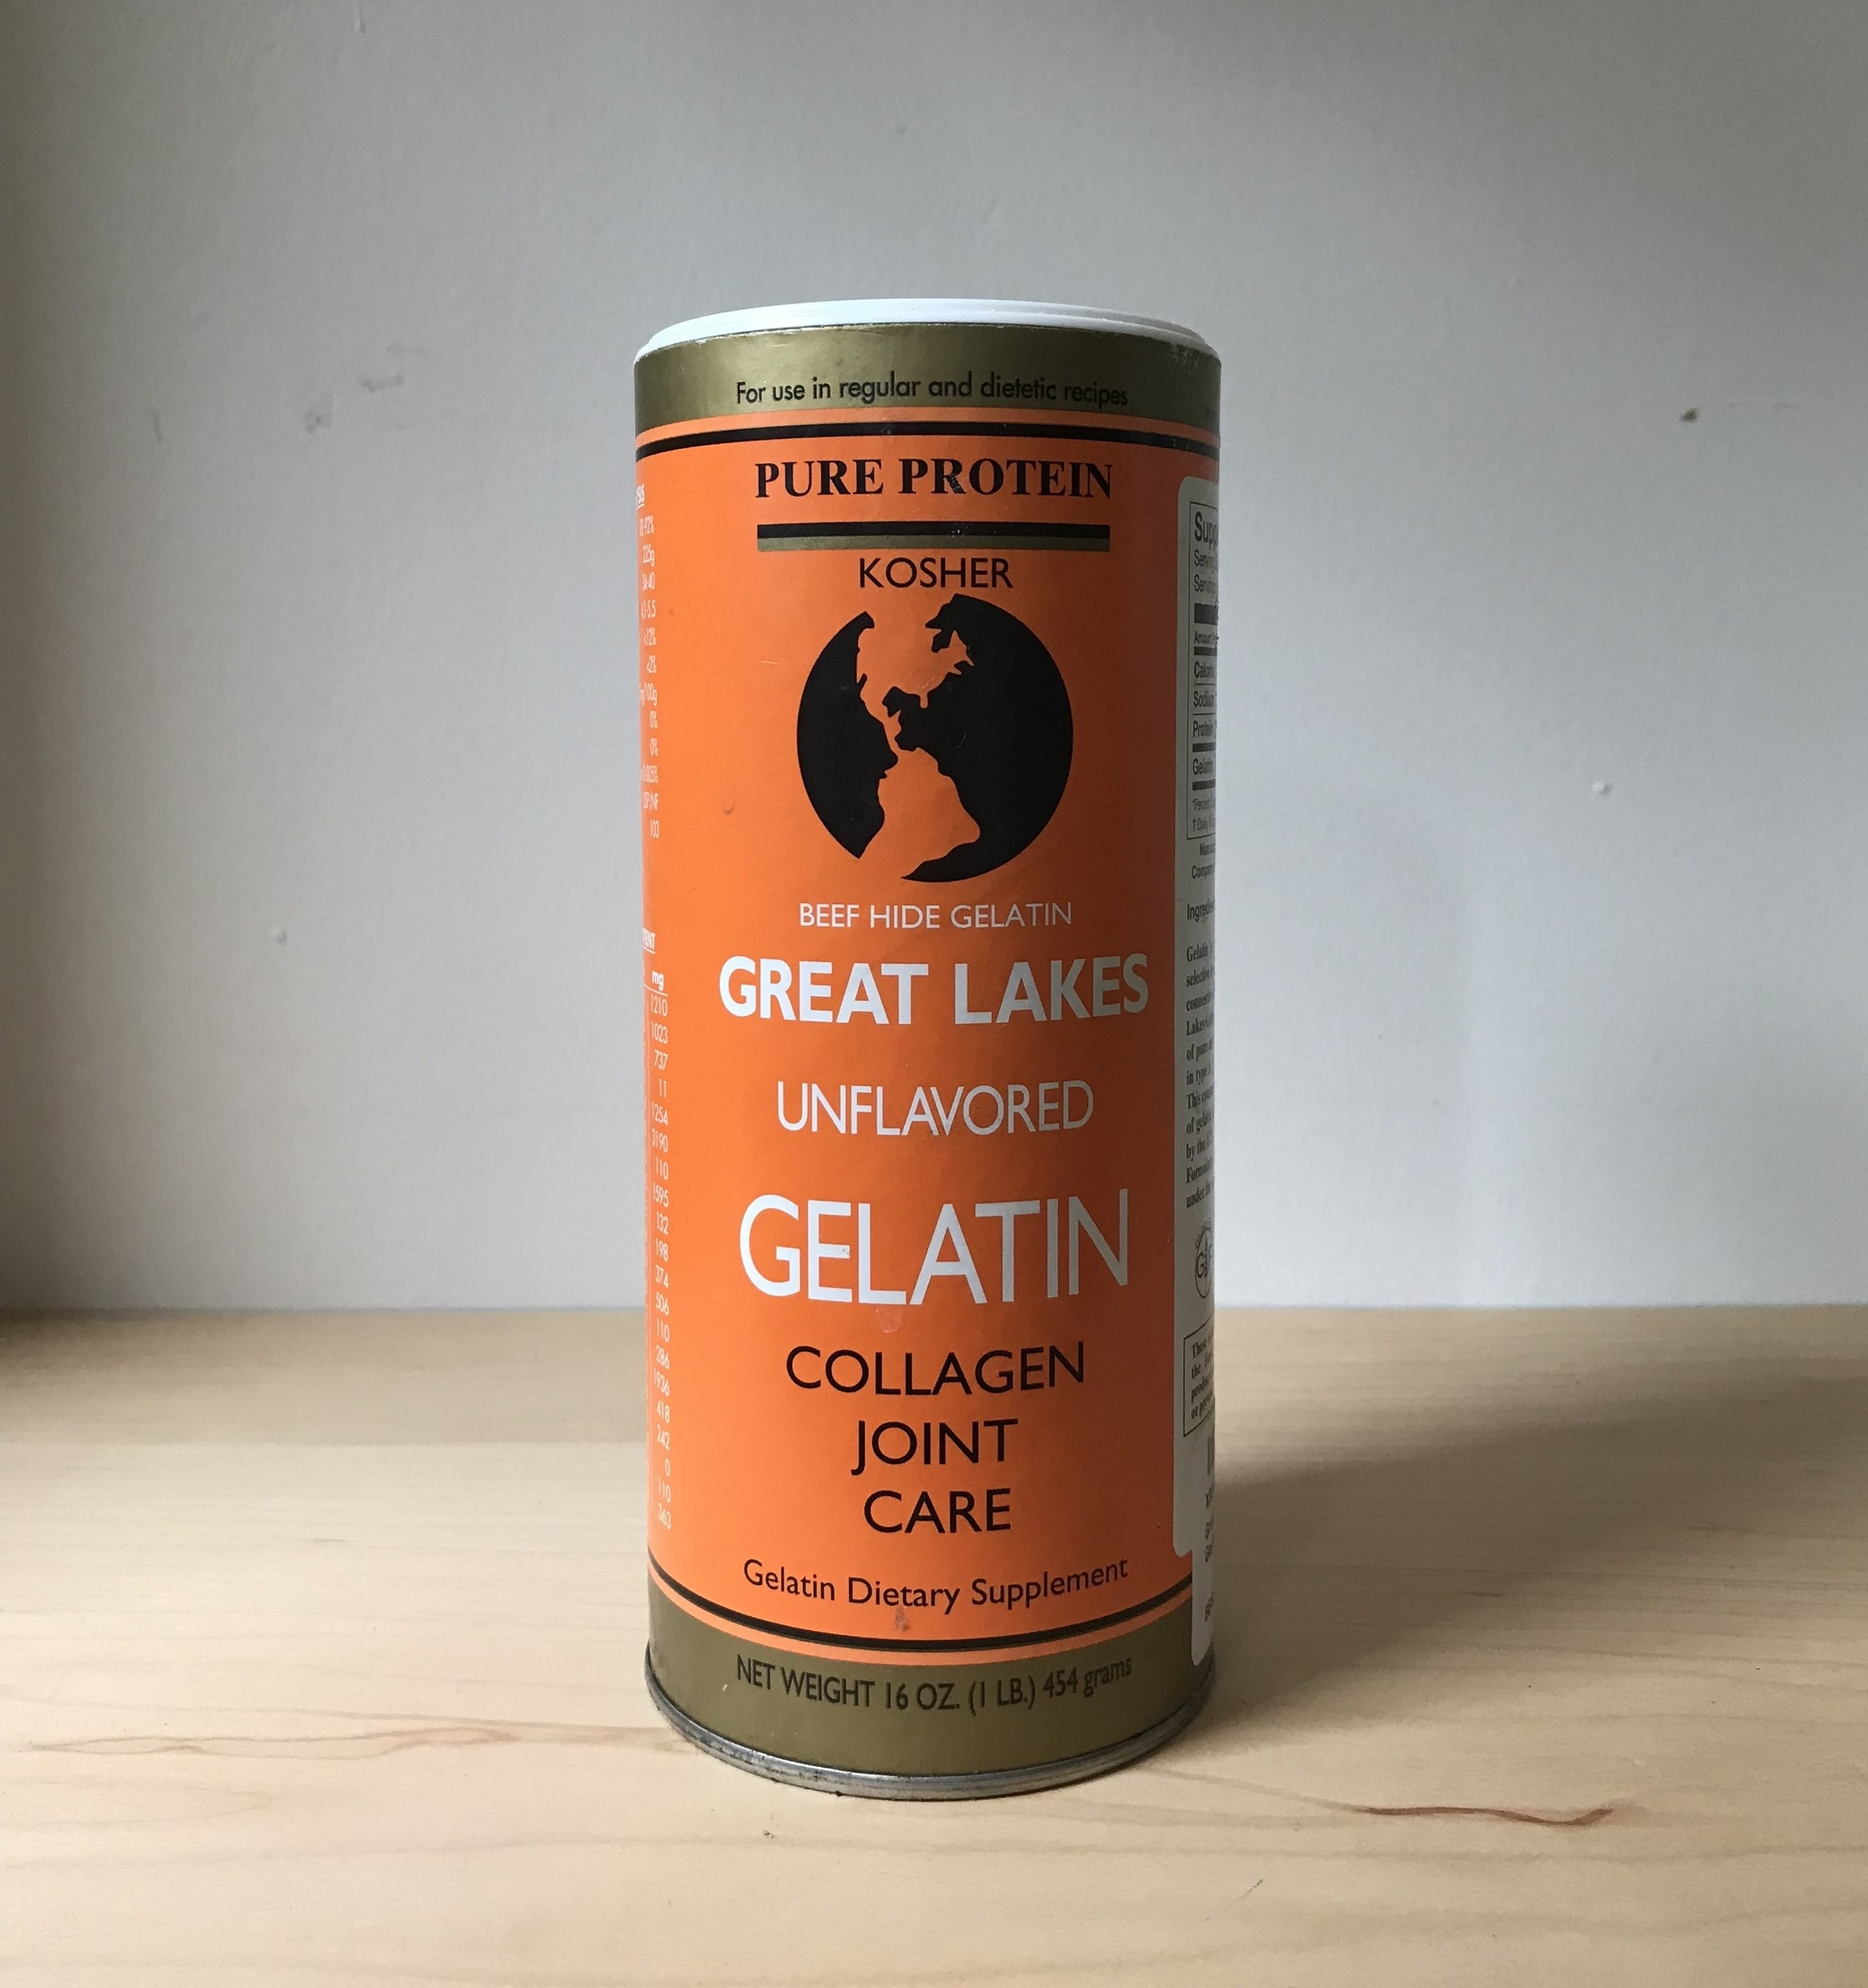 Great Lakes Unflavored Gelatin $24.49